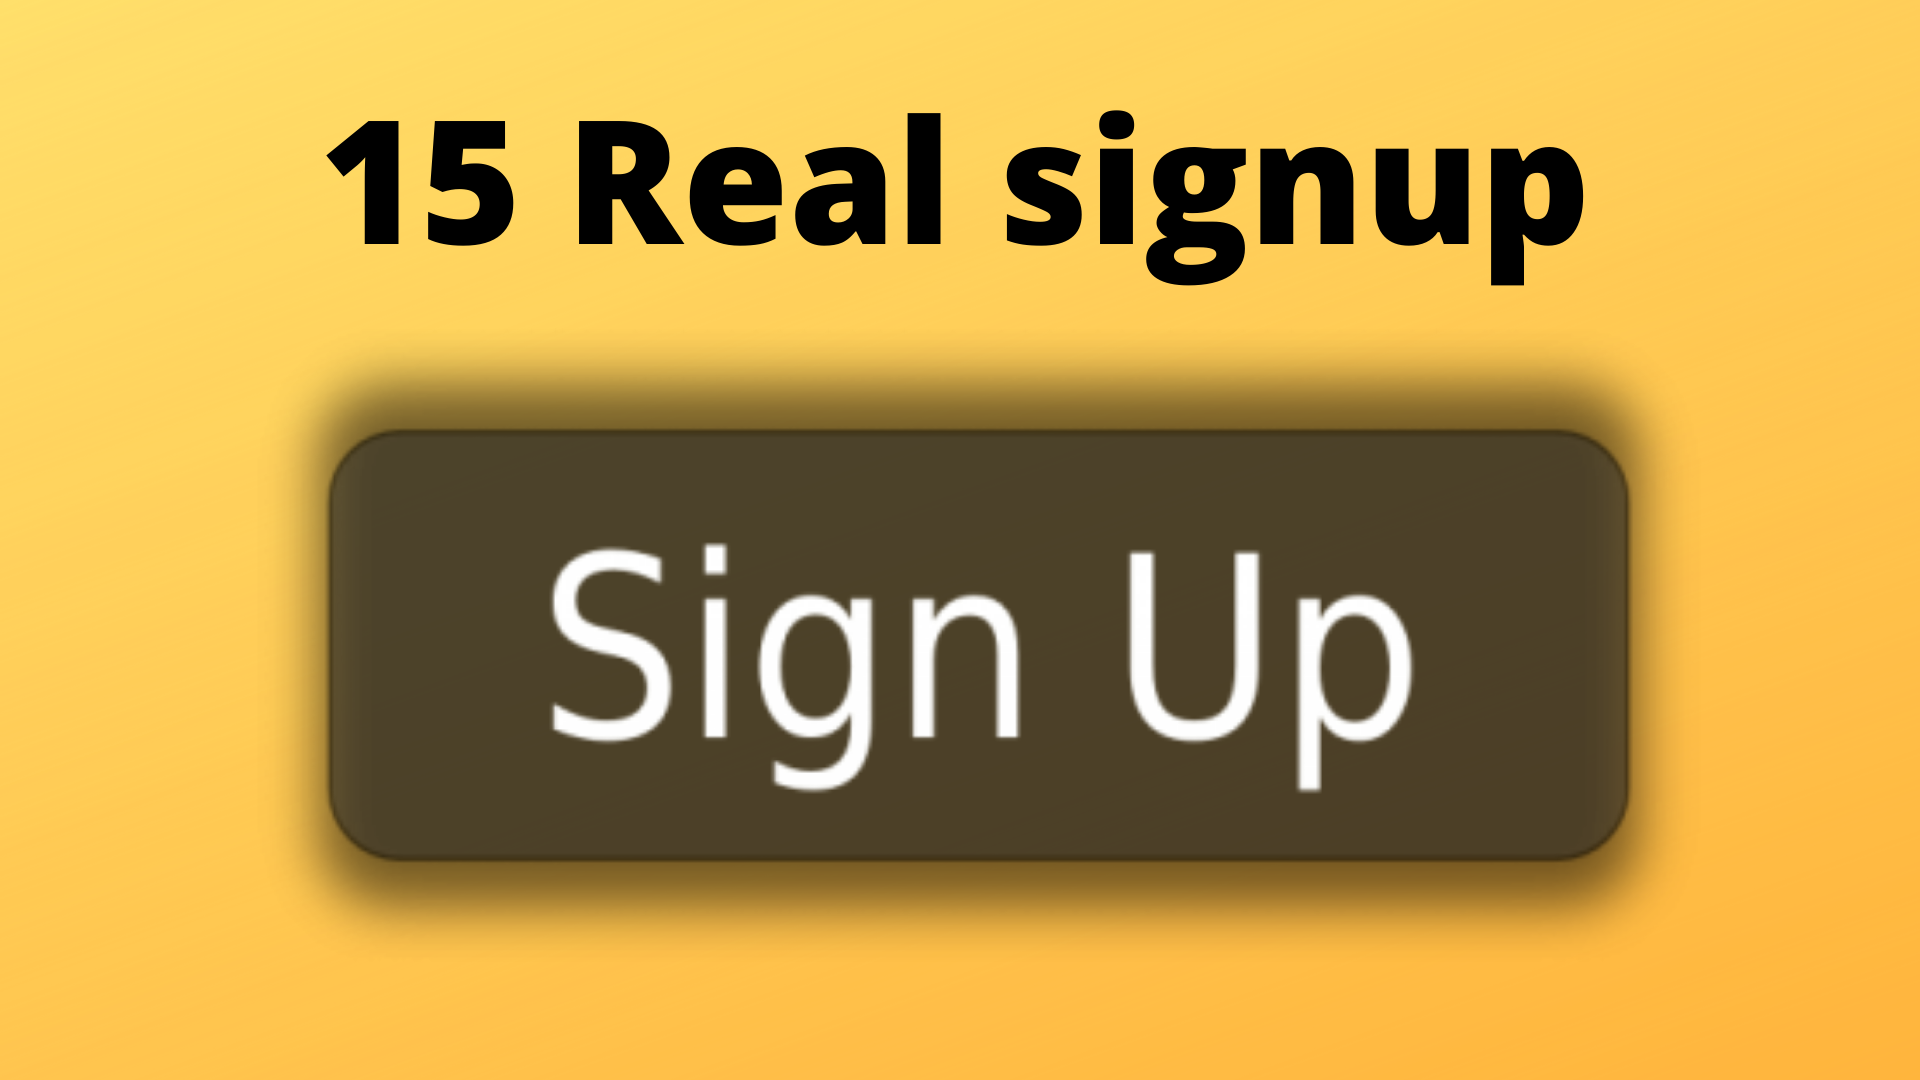 Manually 15 Worldwide registration sign up with real email confirmation